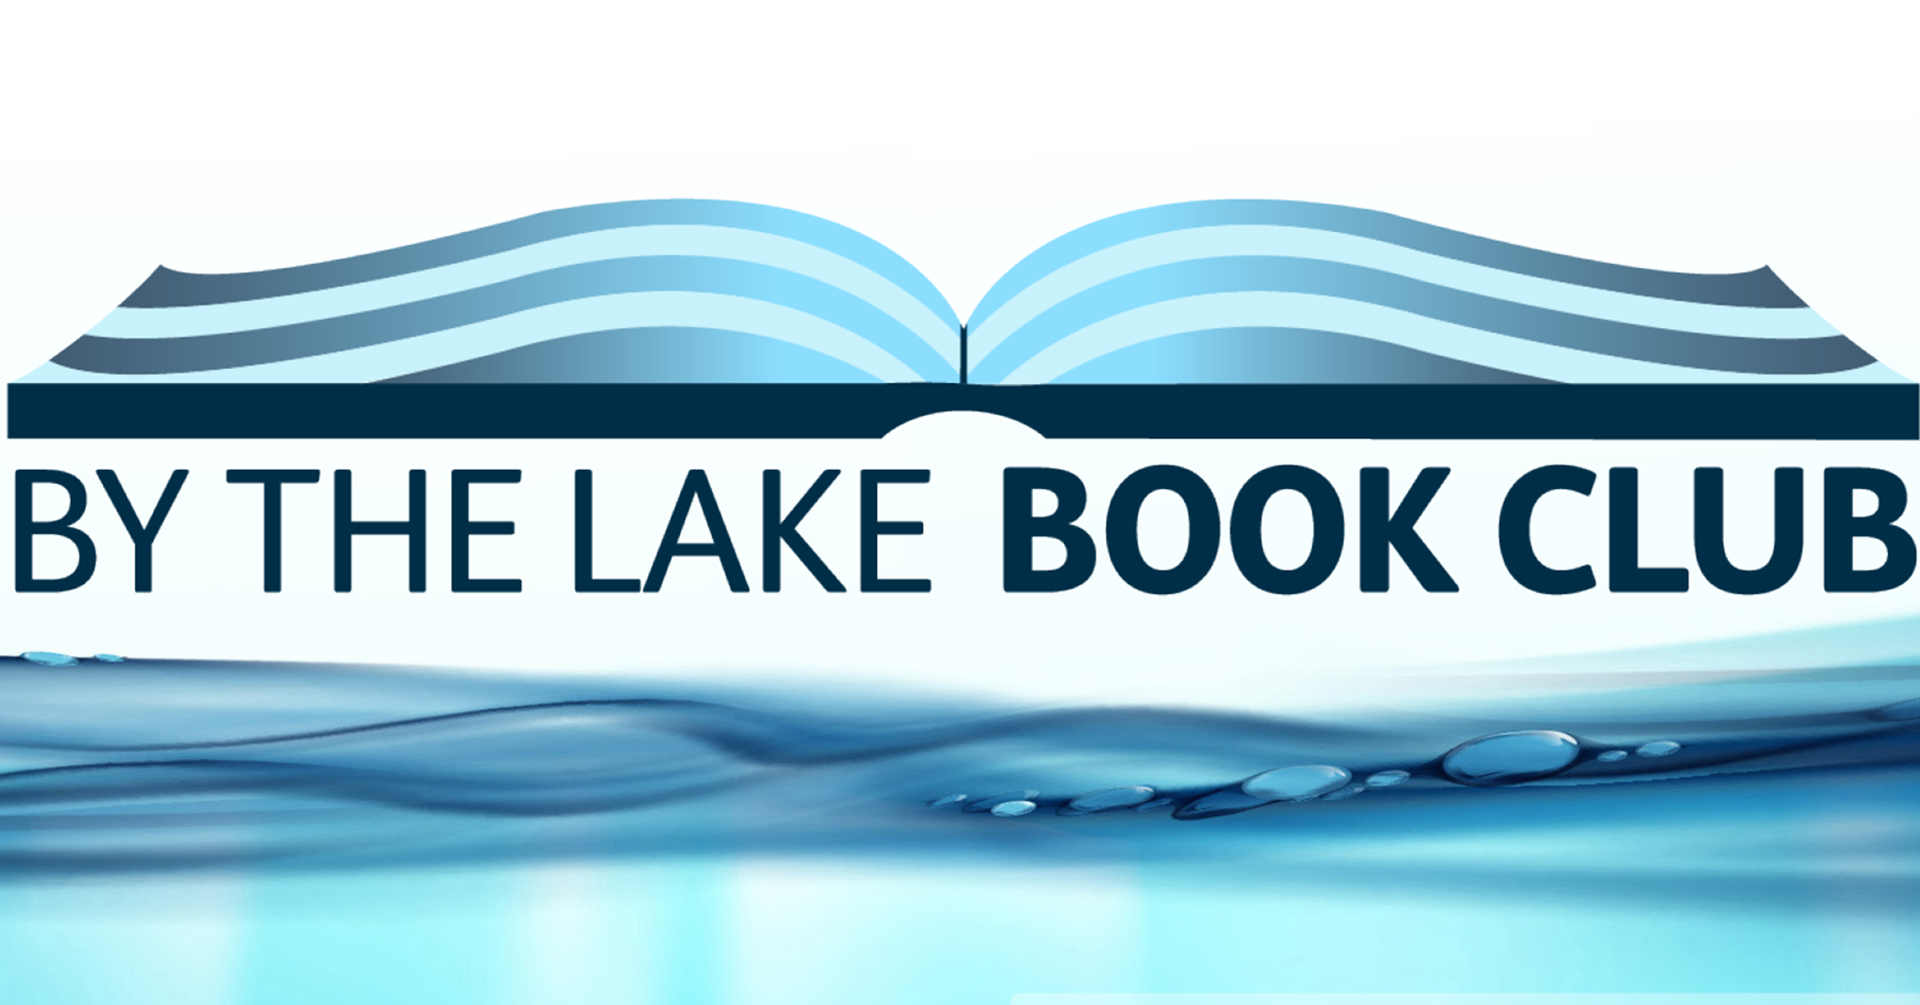 By The Lake Book Club Logo, includes open book about title and clear water underneath